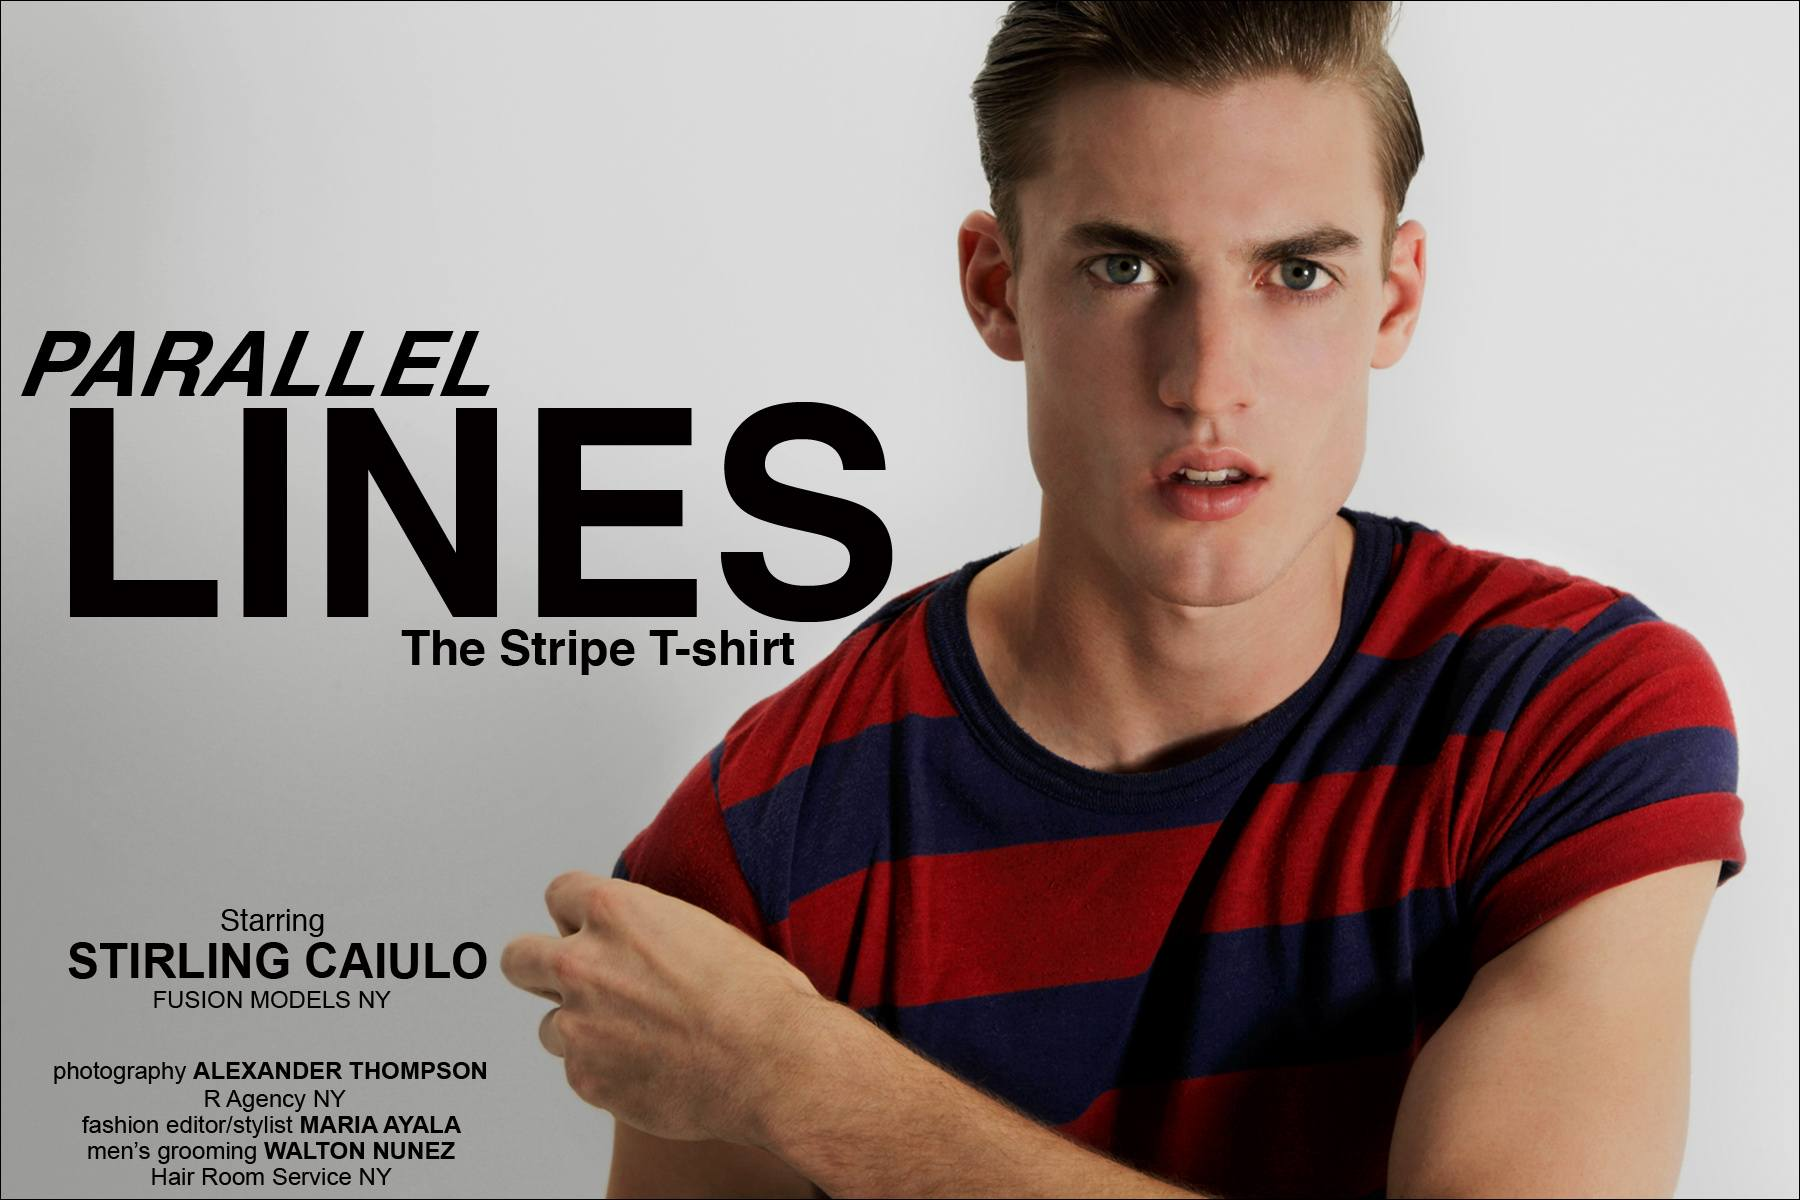 """""""Parallel Lines"""" men's stripe t-shirt editorial starring Stirling Caiulo, from the Fusion Agency New York, photographed by Alexander Thompson for Ponyboy Magazine."""